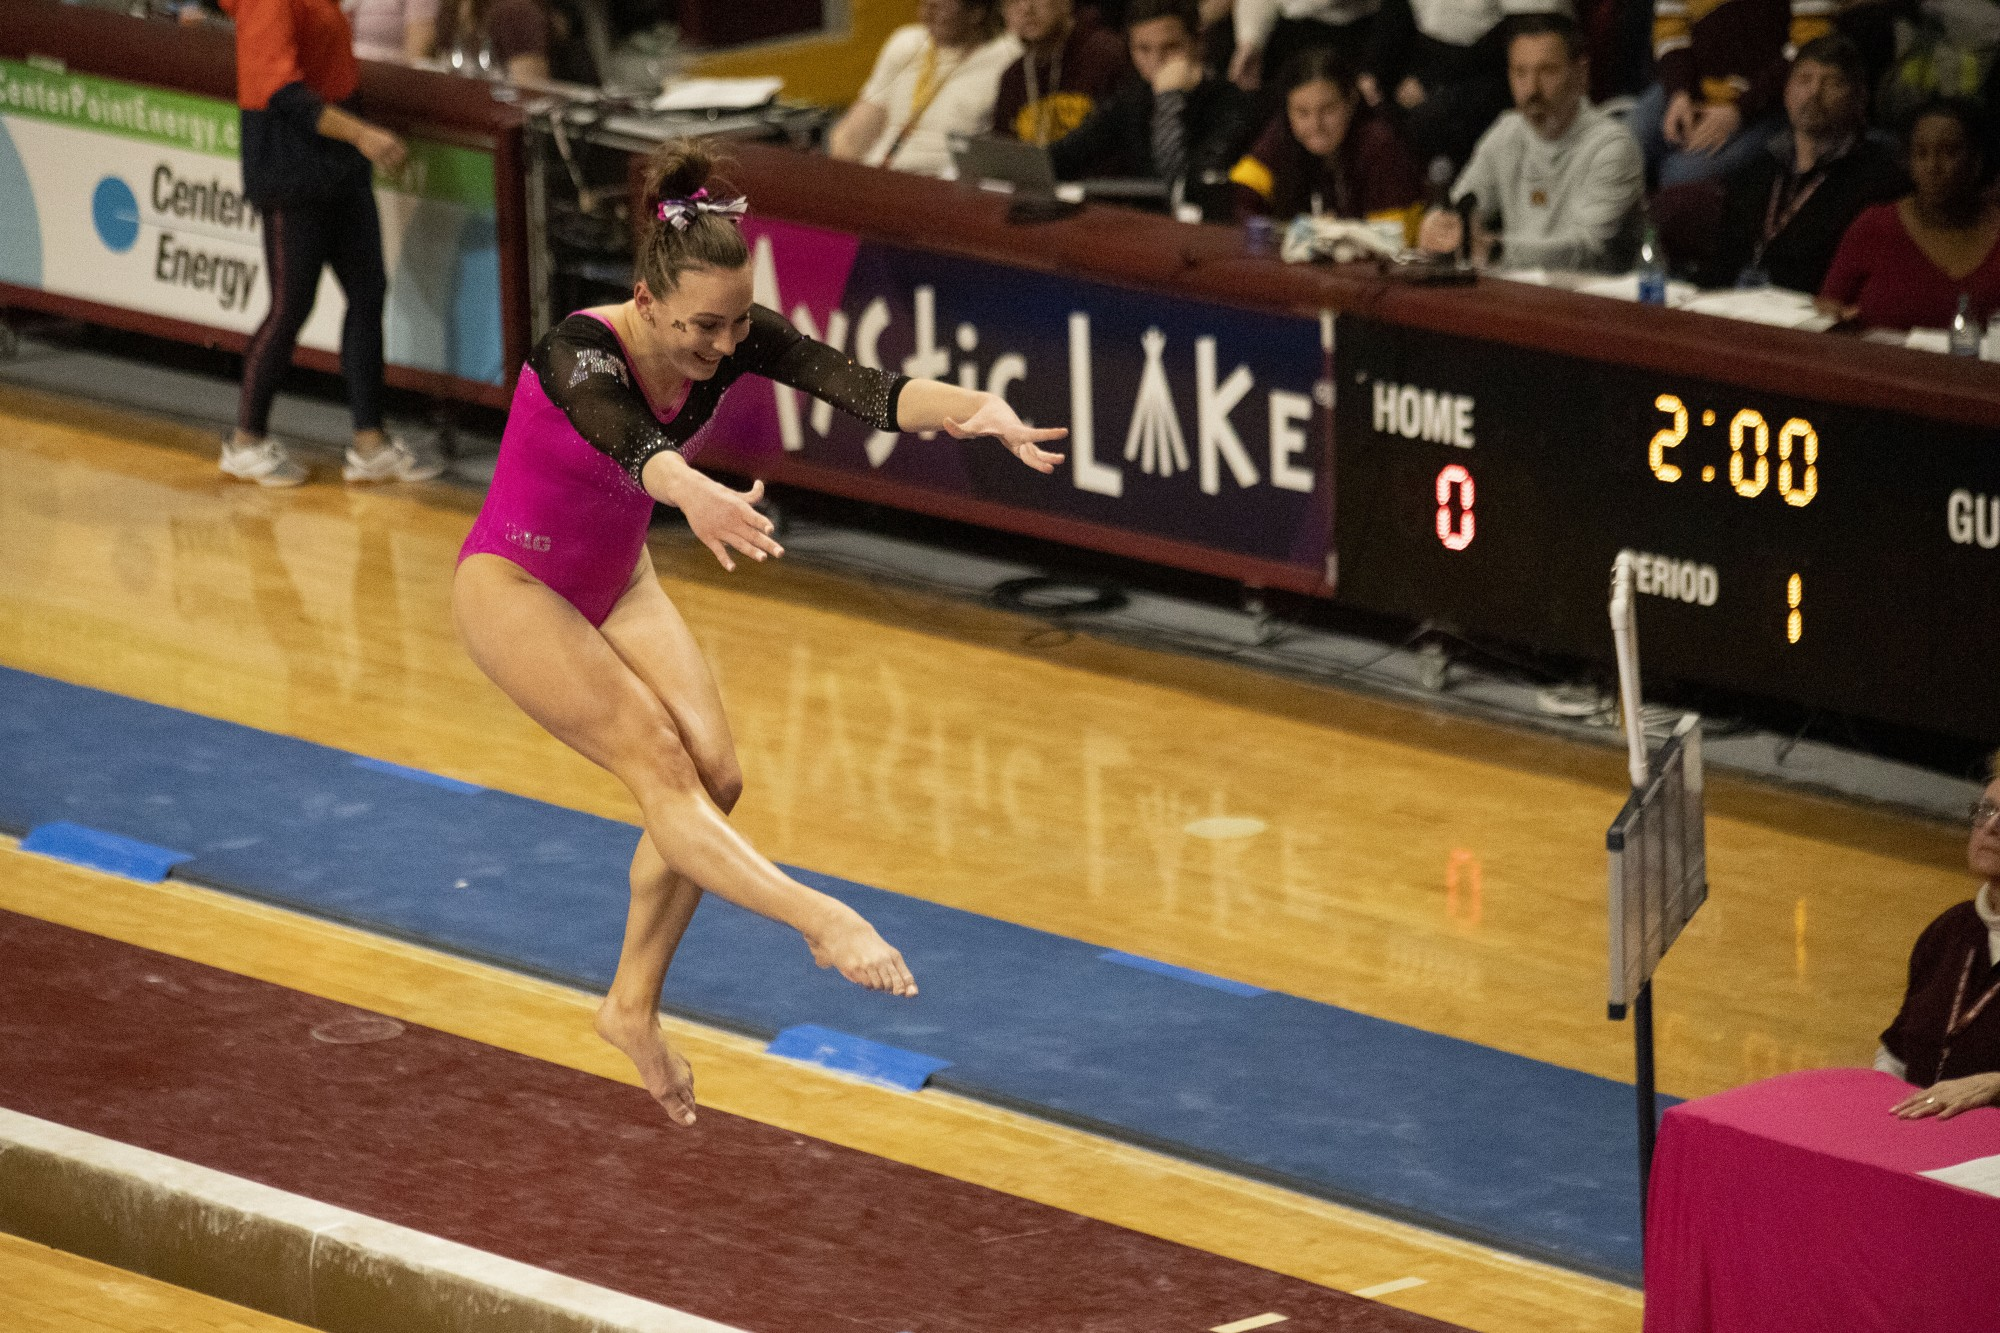 Lexy Ramler competes on the beam at the Maturi Pavillion on Saturday, Jan. 25, 2020.